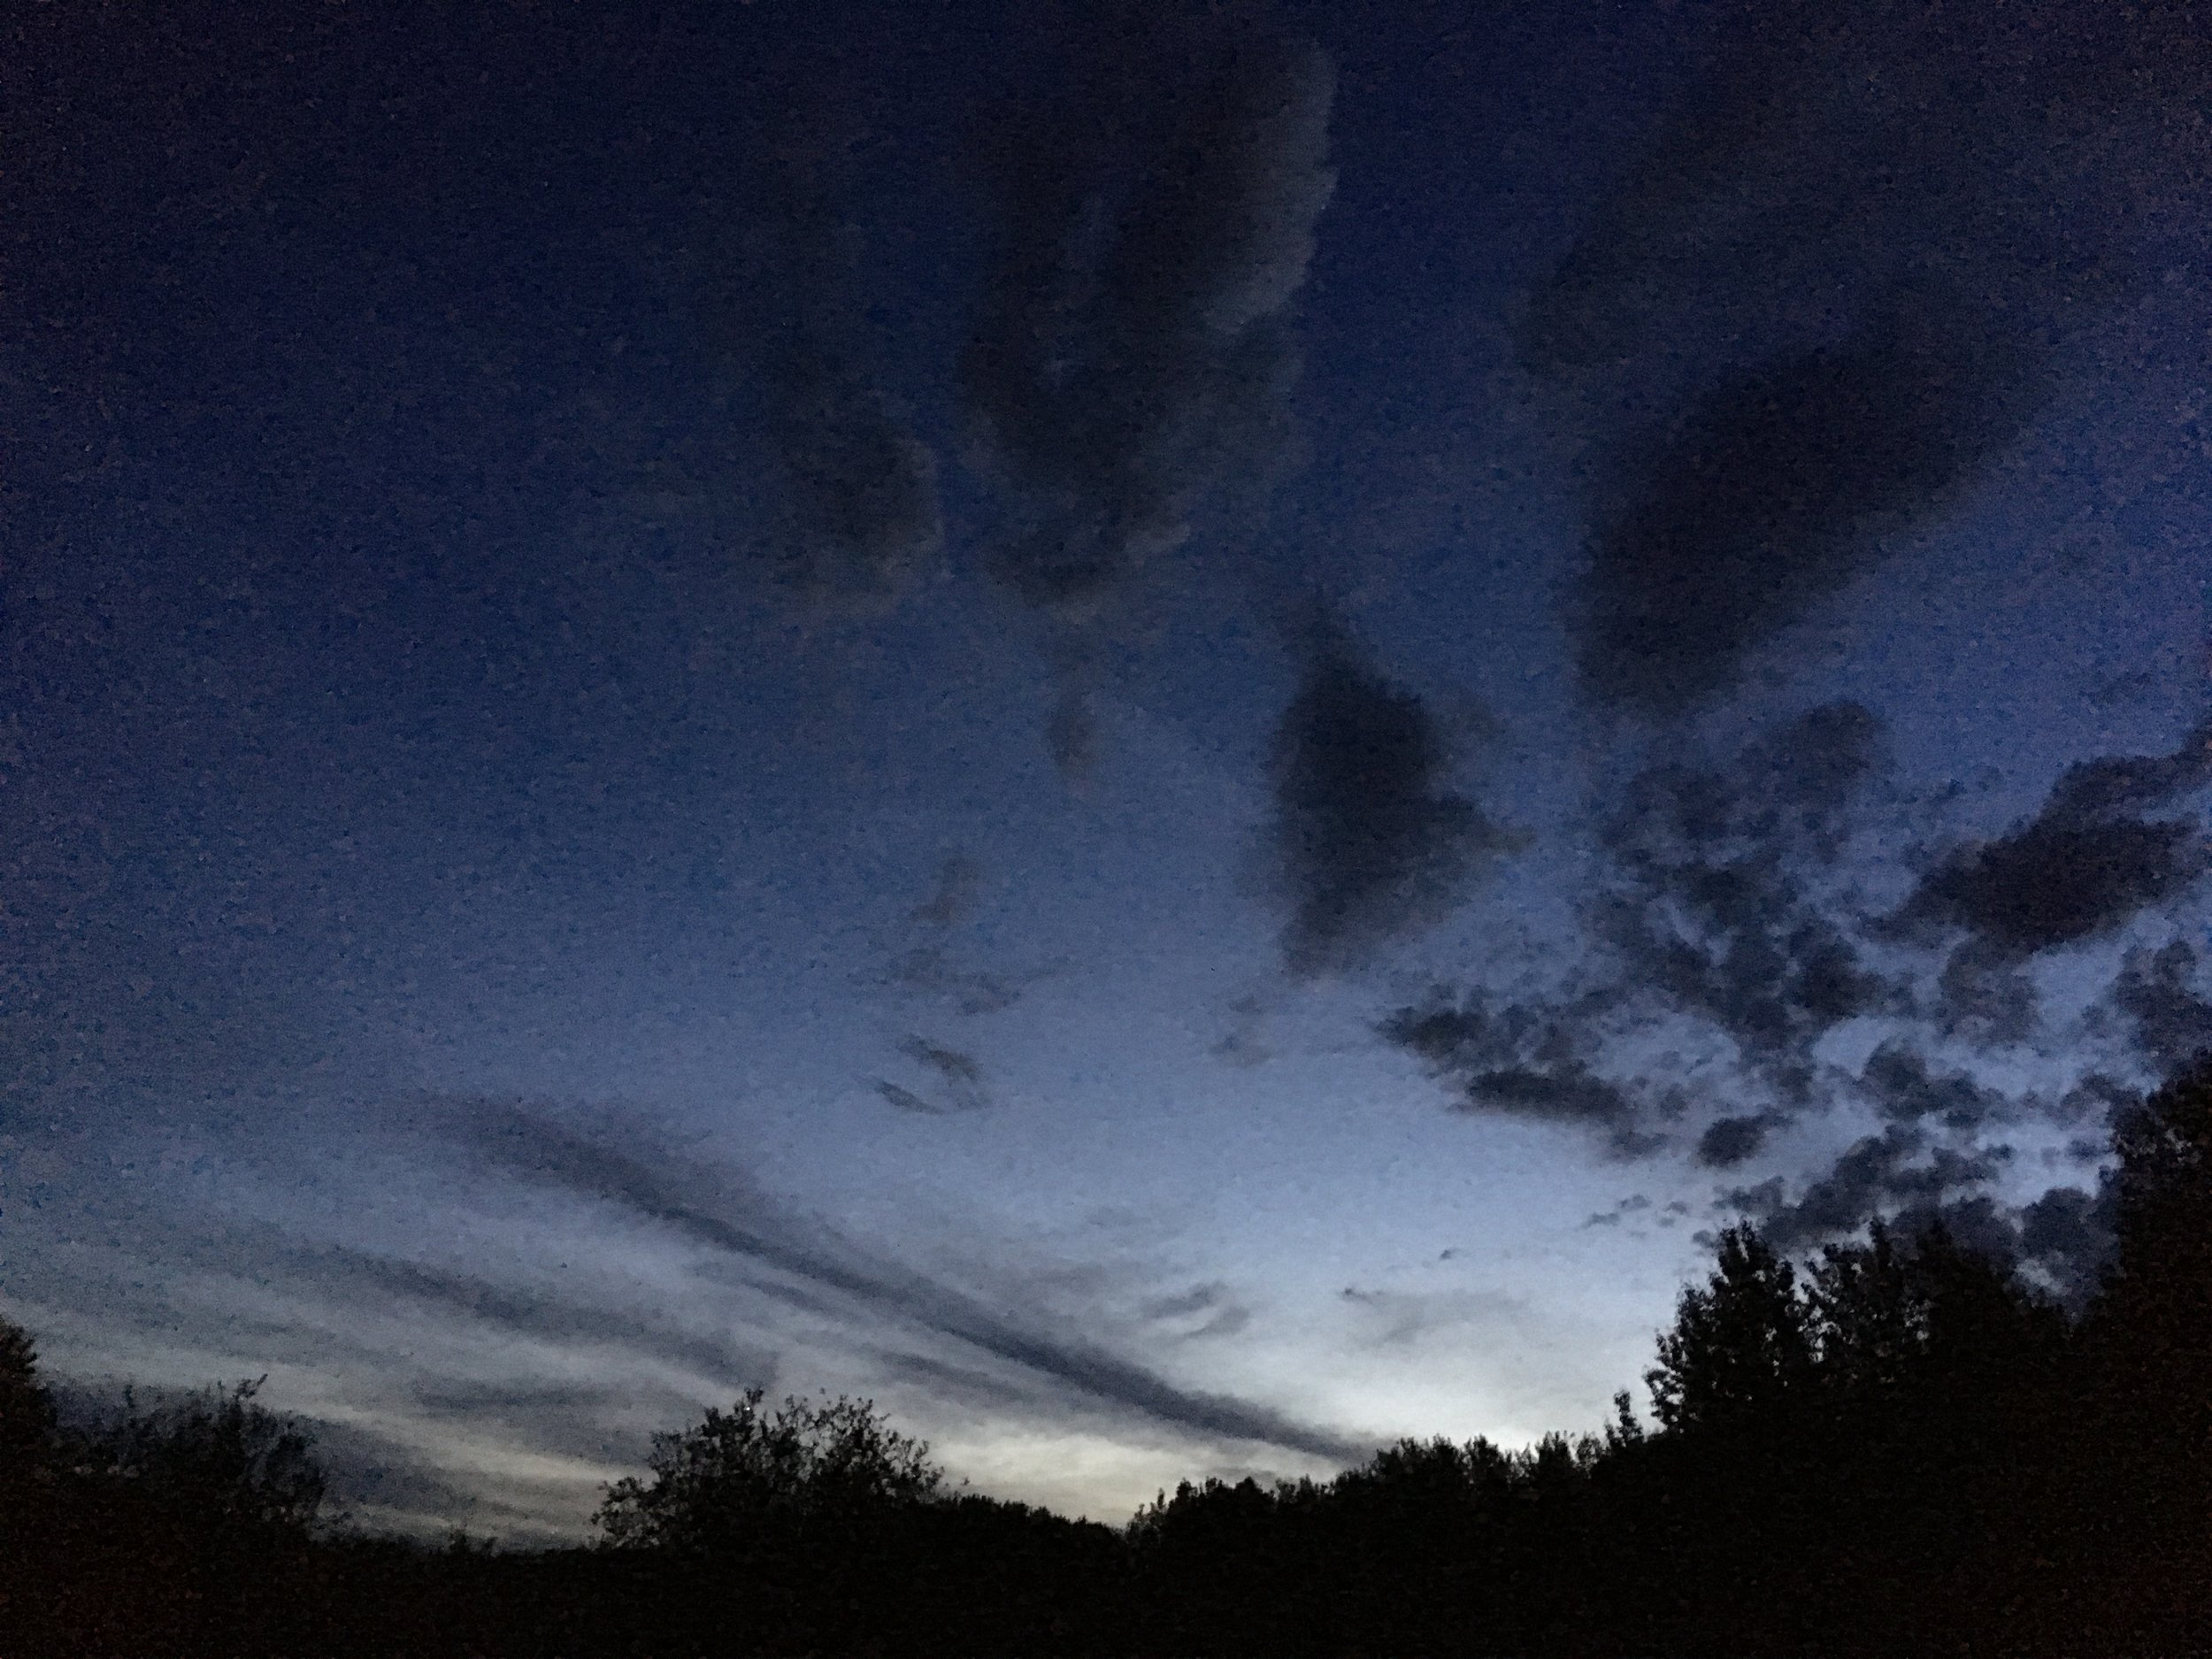 The night sky at the Glory Hills Bat and Owl survey